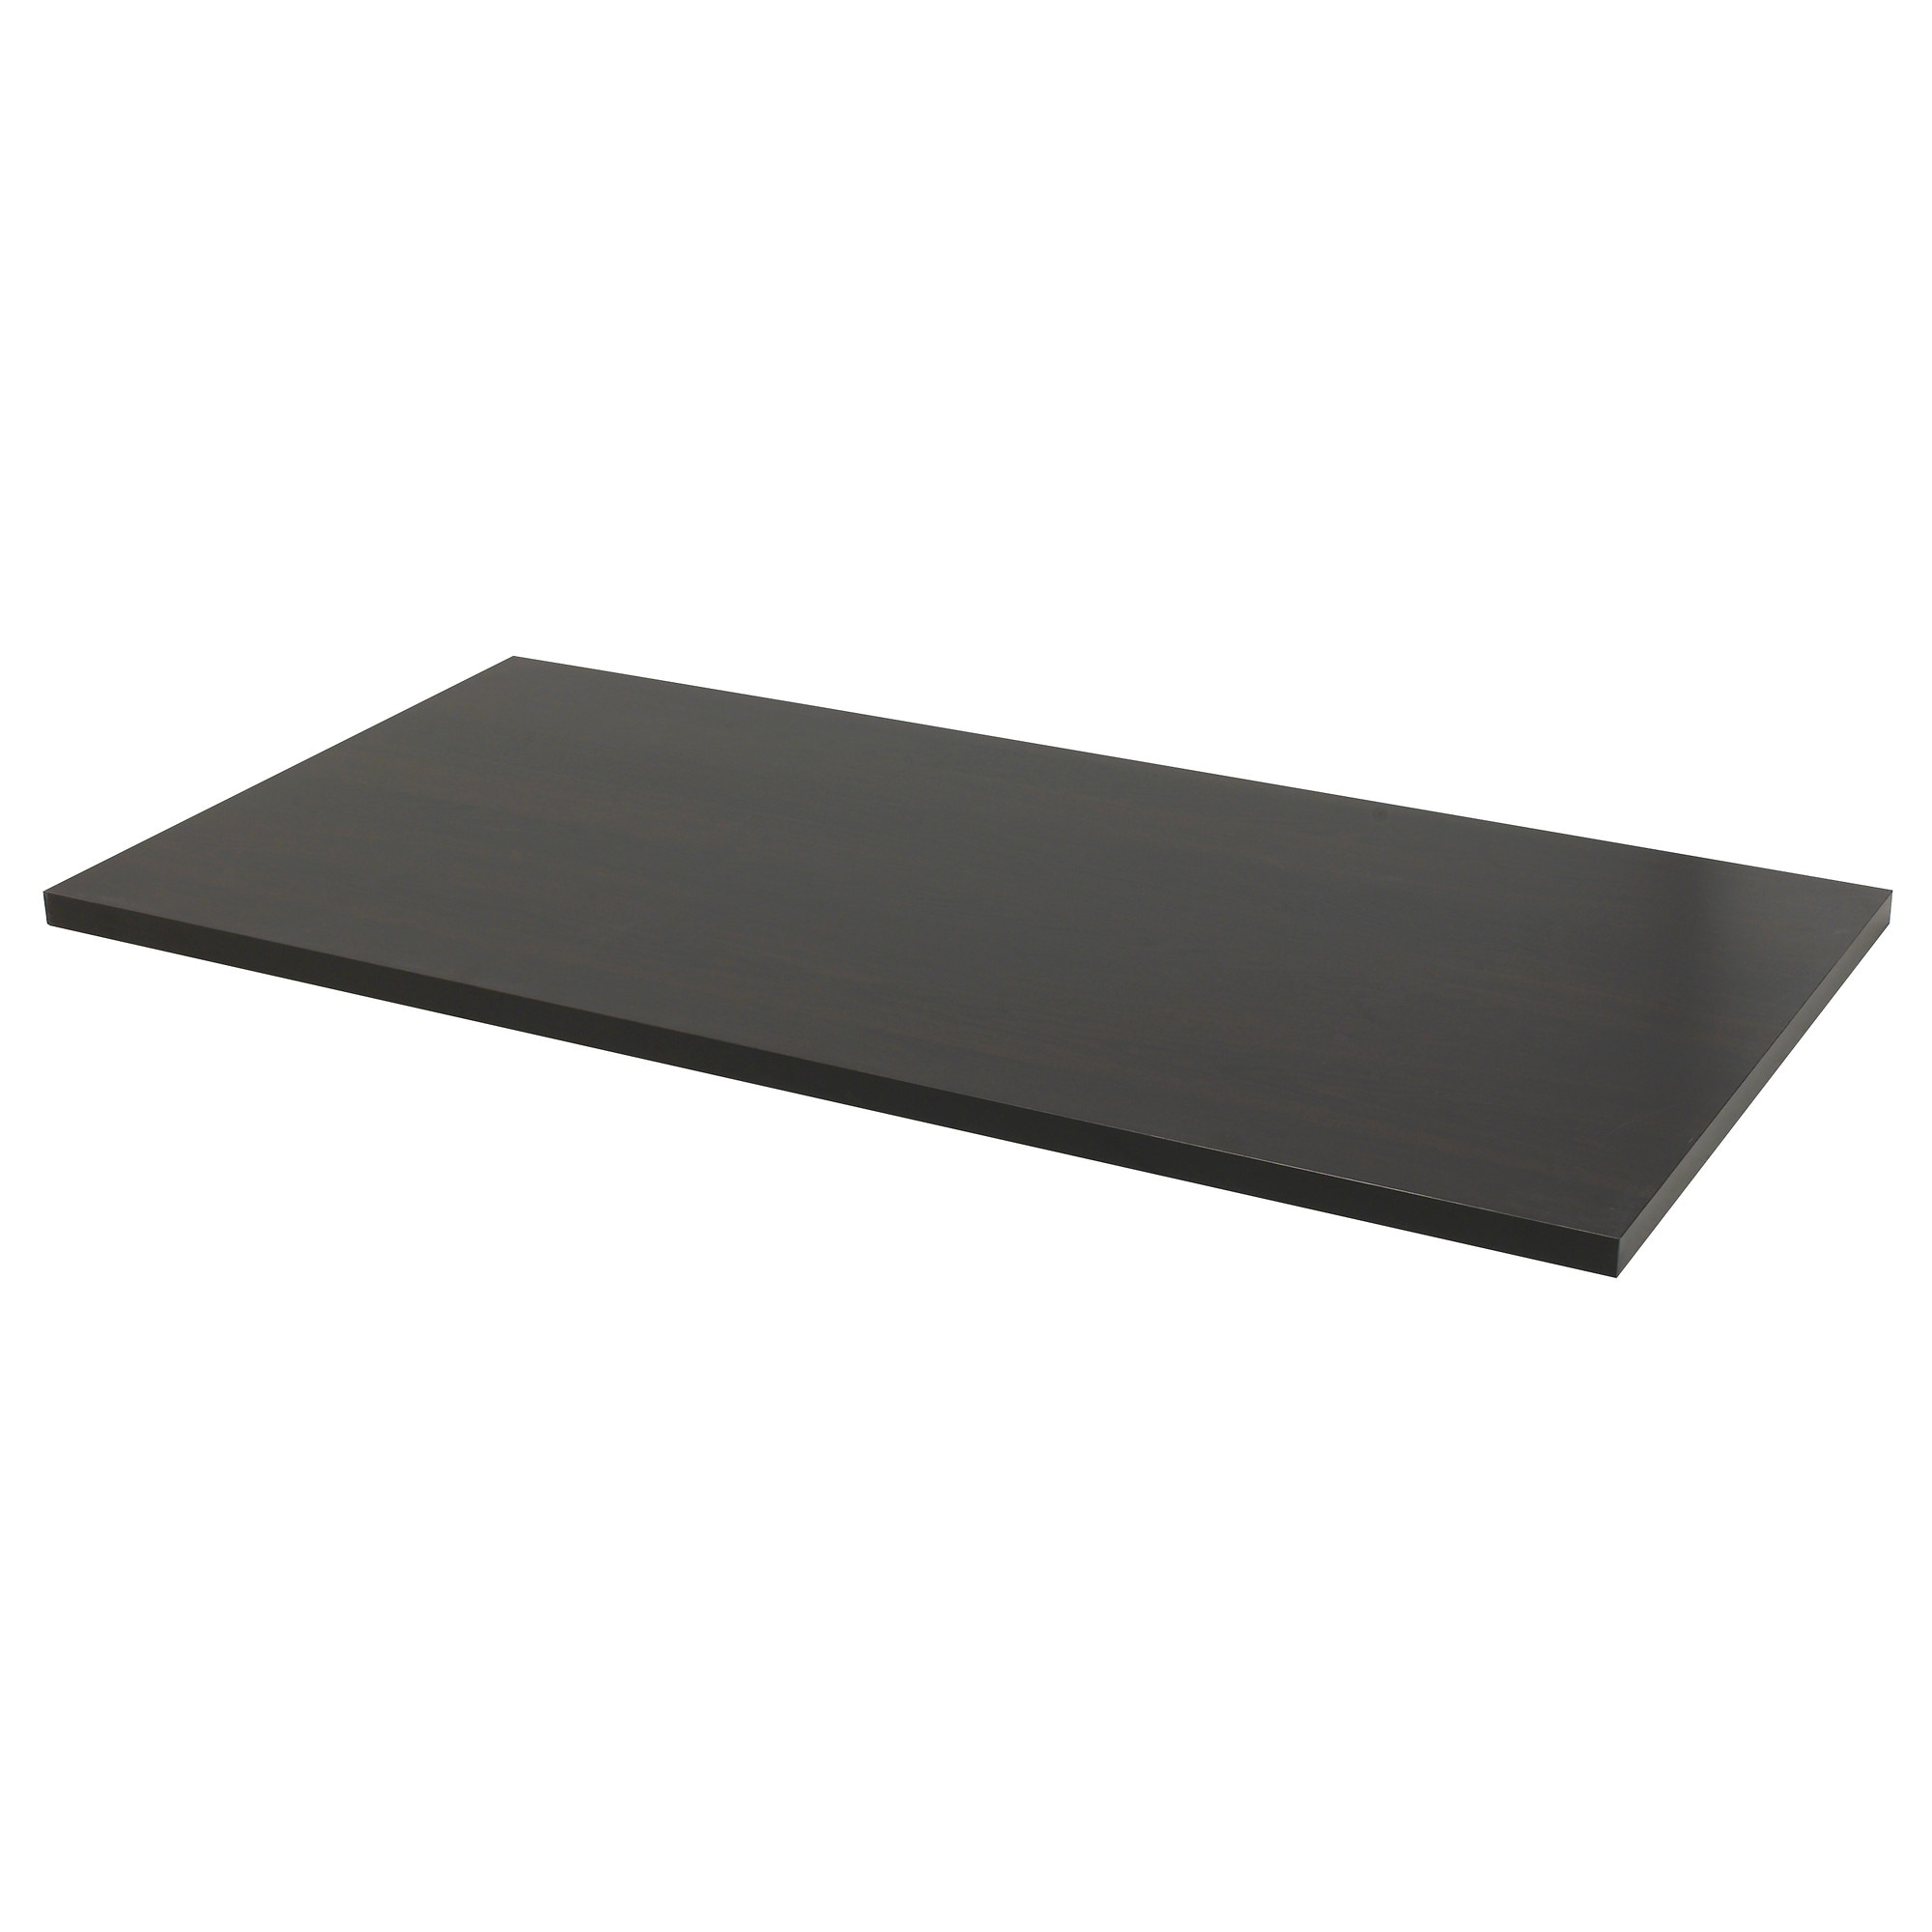 Black glass table top - Inter Ikea Systems B V 1999 2017 Privacy Policy